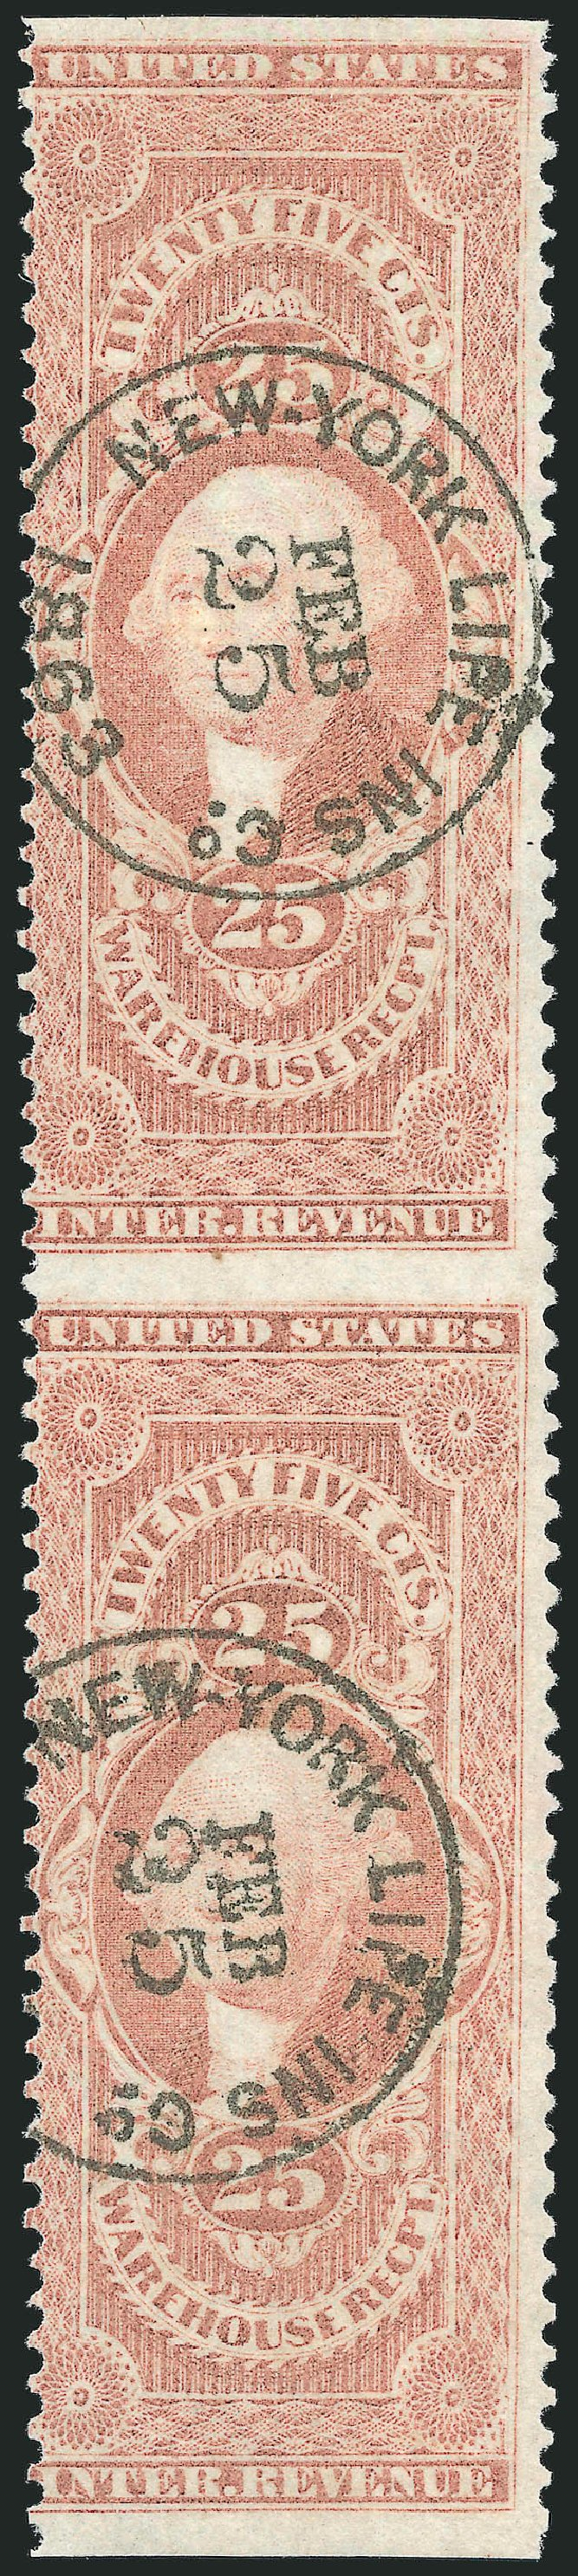 Prices of US Stamp Scott Catalogue # R50 - 25c 1862 Revenue Warehouse. Robert Siegel Auction Galleries, Jun 2015, Sale 1100, Lot 149